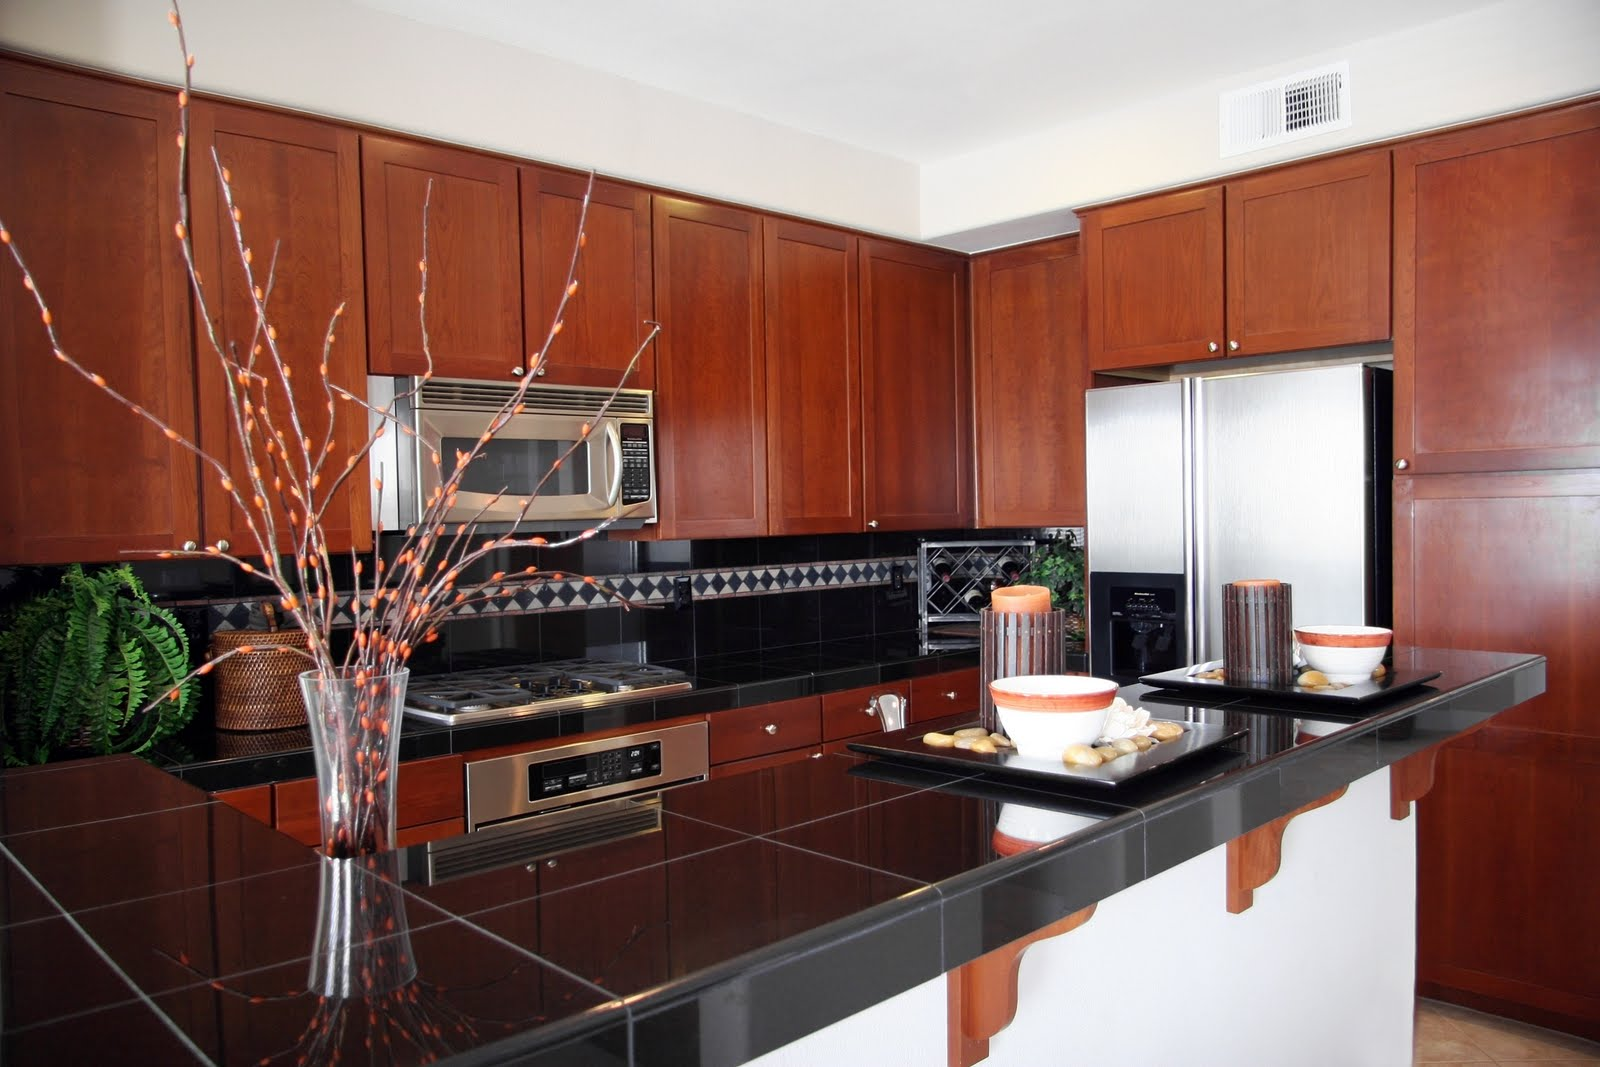 interior design kitchen cooktops home pictures ideas